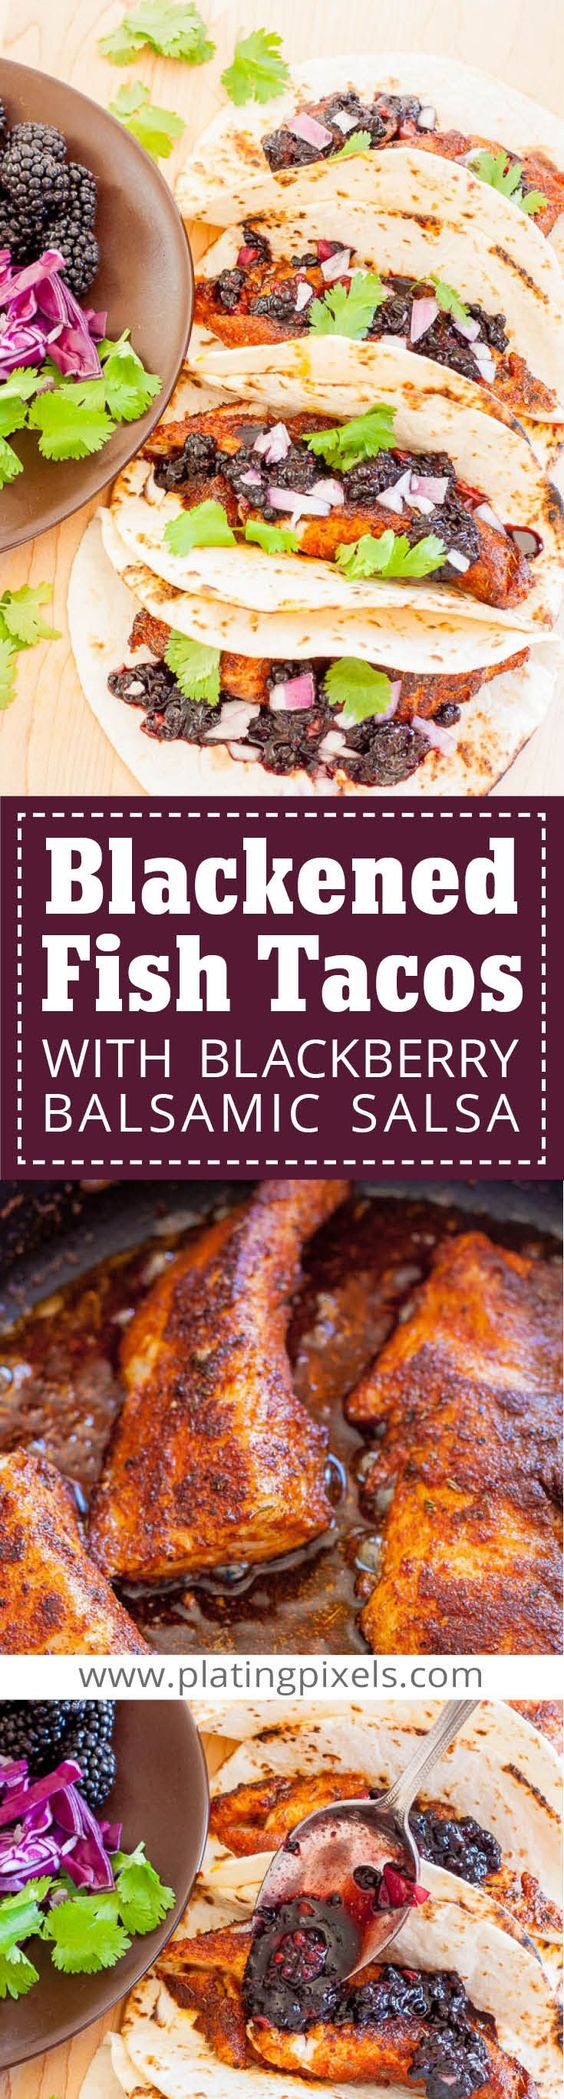 Blackened fish tacos with blackberry balsamic salsa for Blackened fish tacos recipe